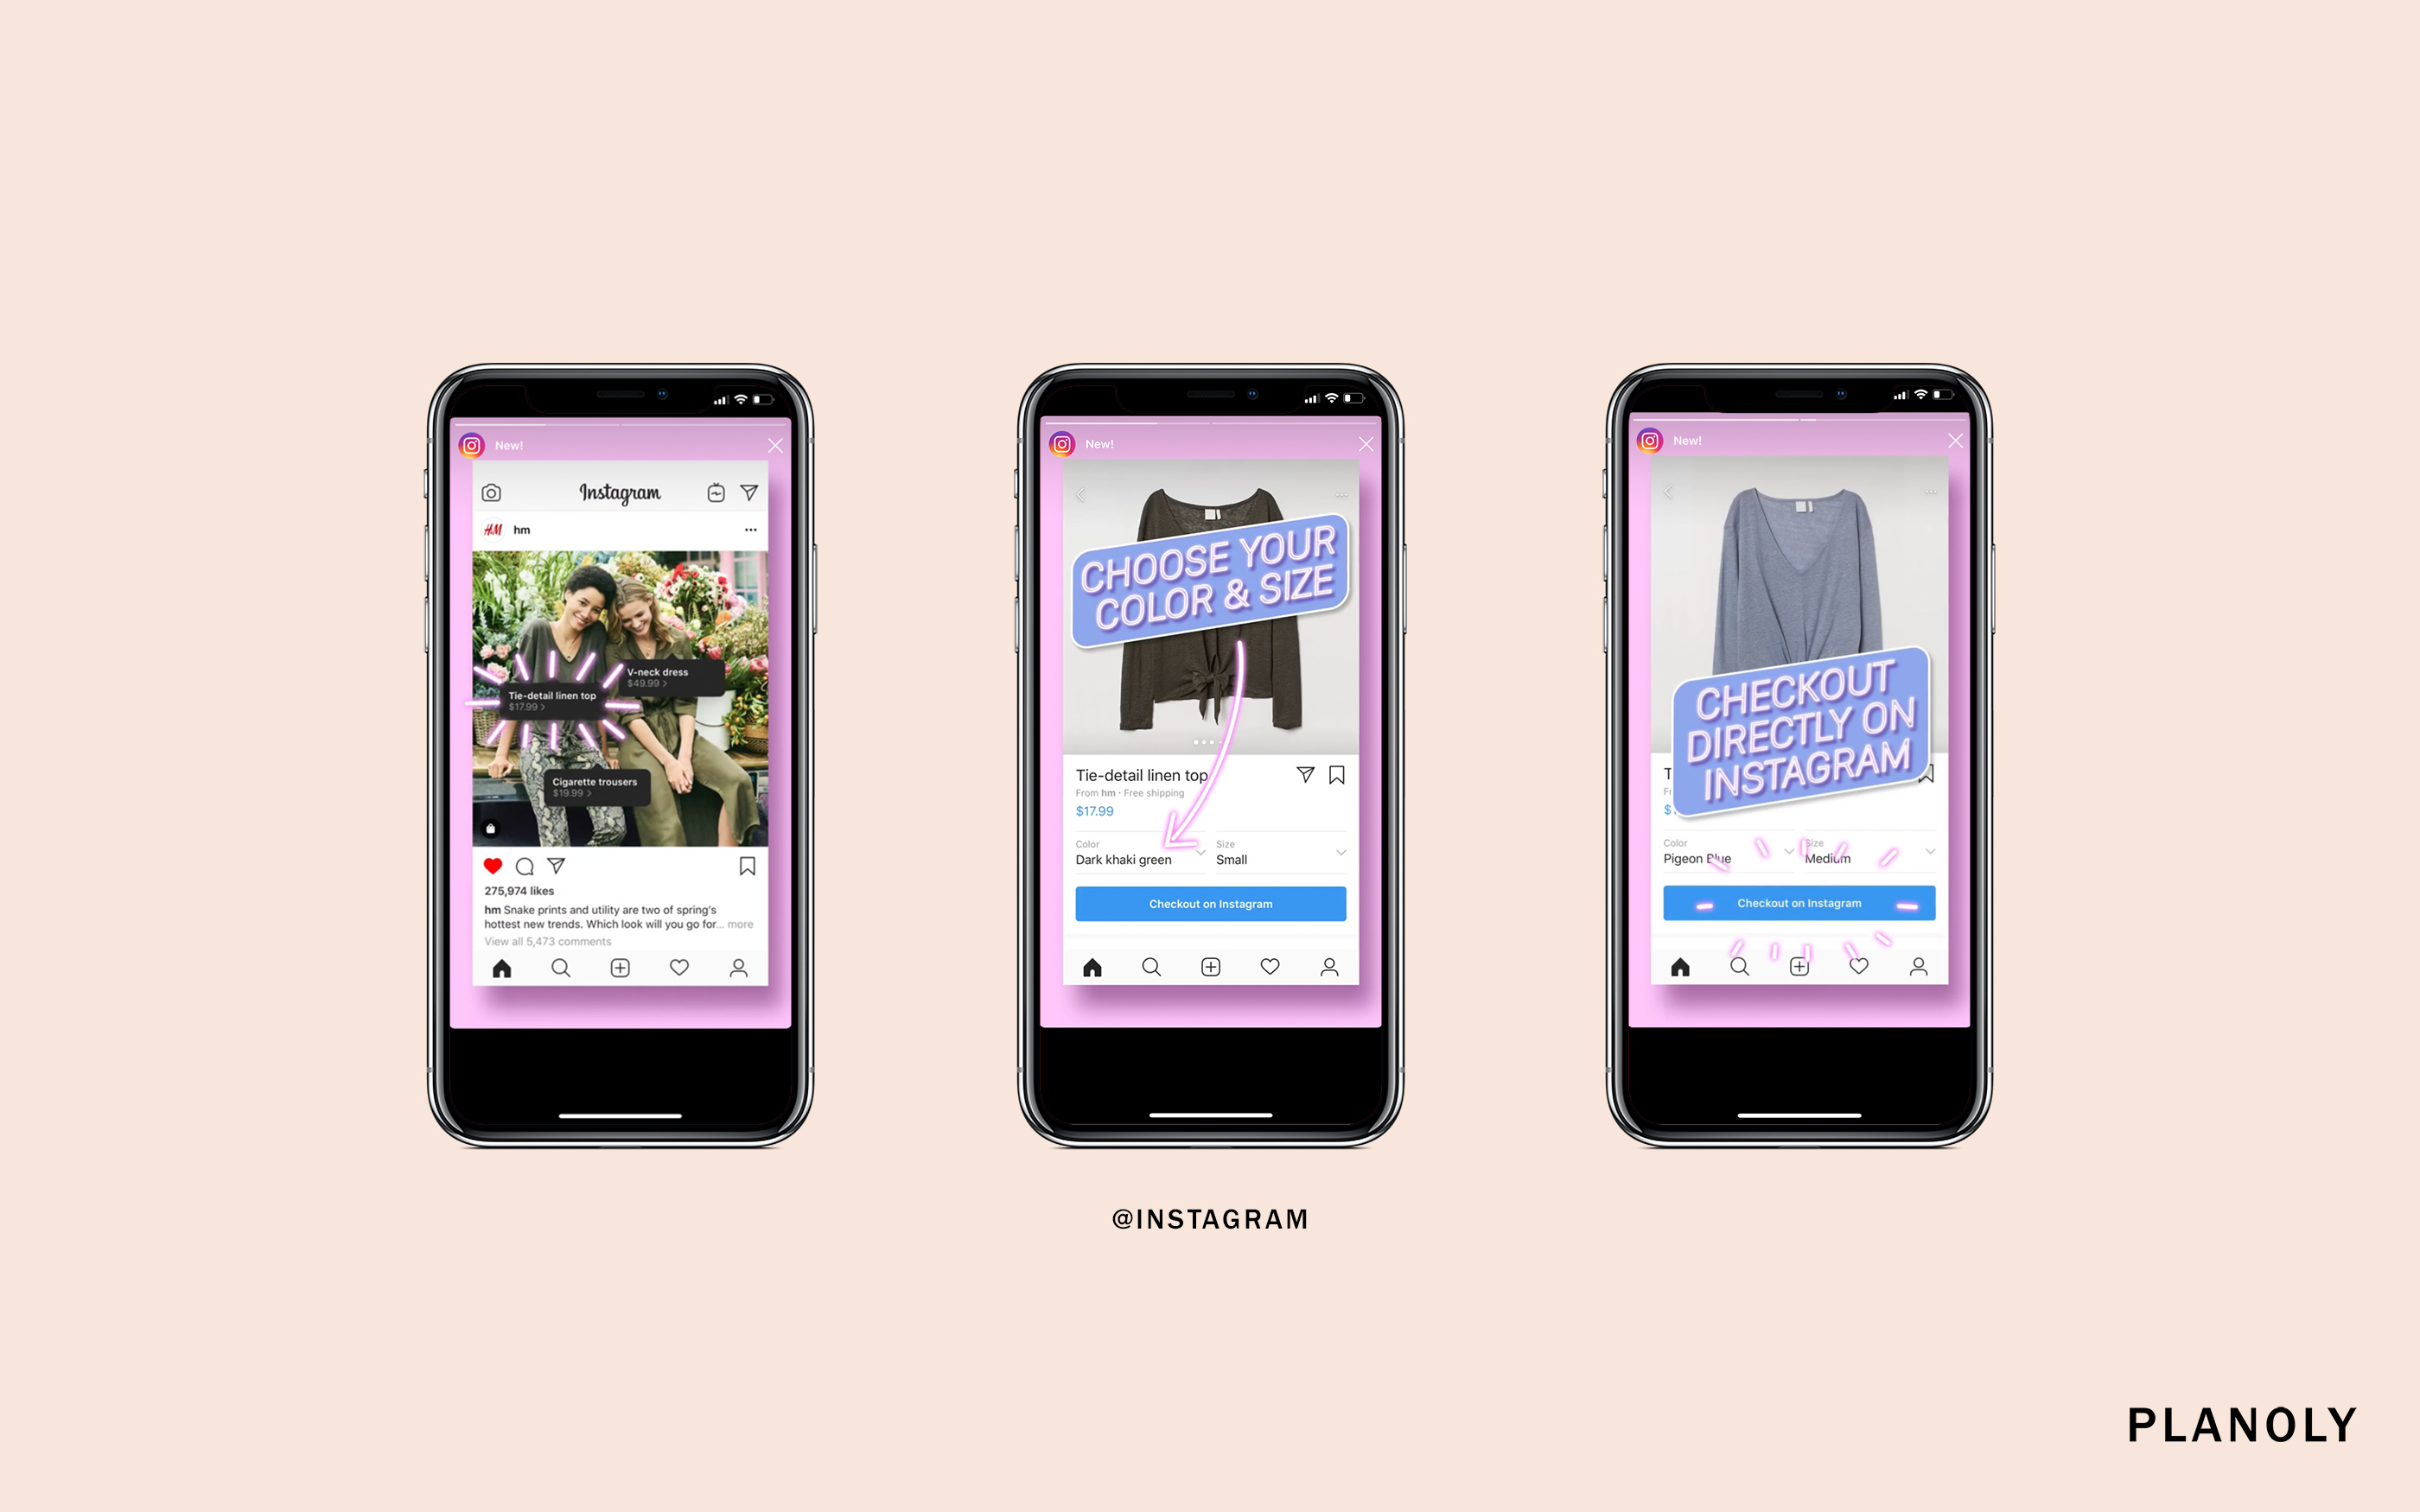 Instagram Releases New Shopping 'Checkout' Feature